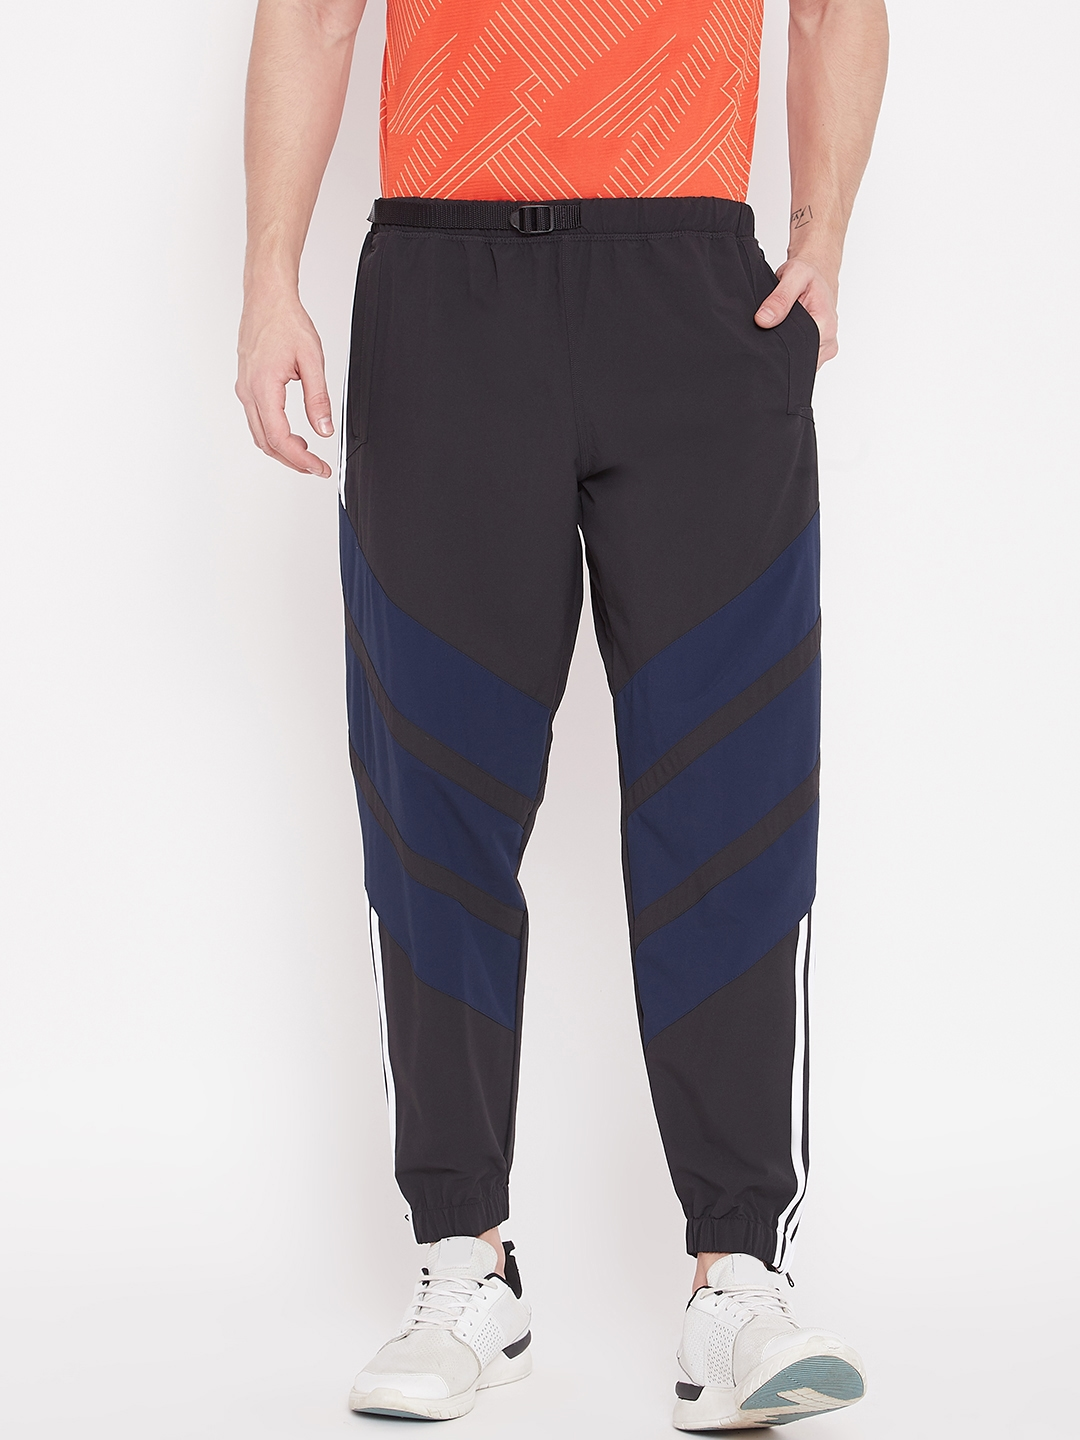 8fa520a3b1e3d ADIDAS Originals Men Black   Navy Blue 3-Striped Wind Skateboarding Joggers